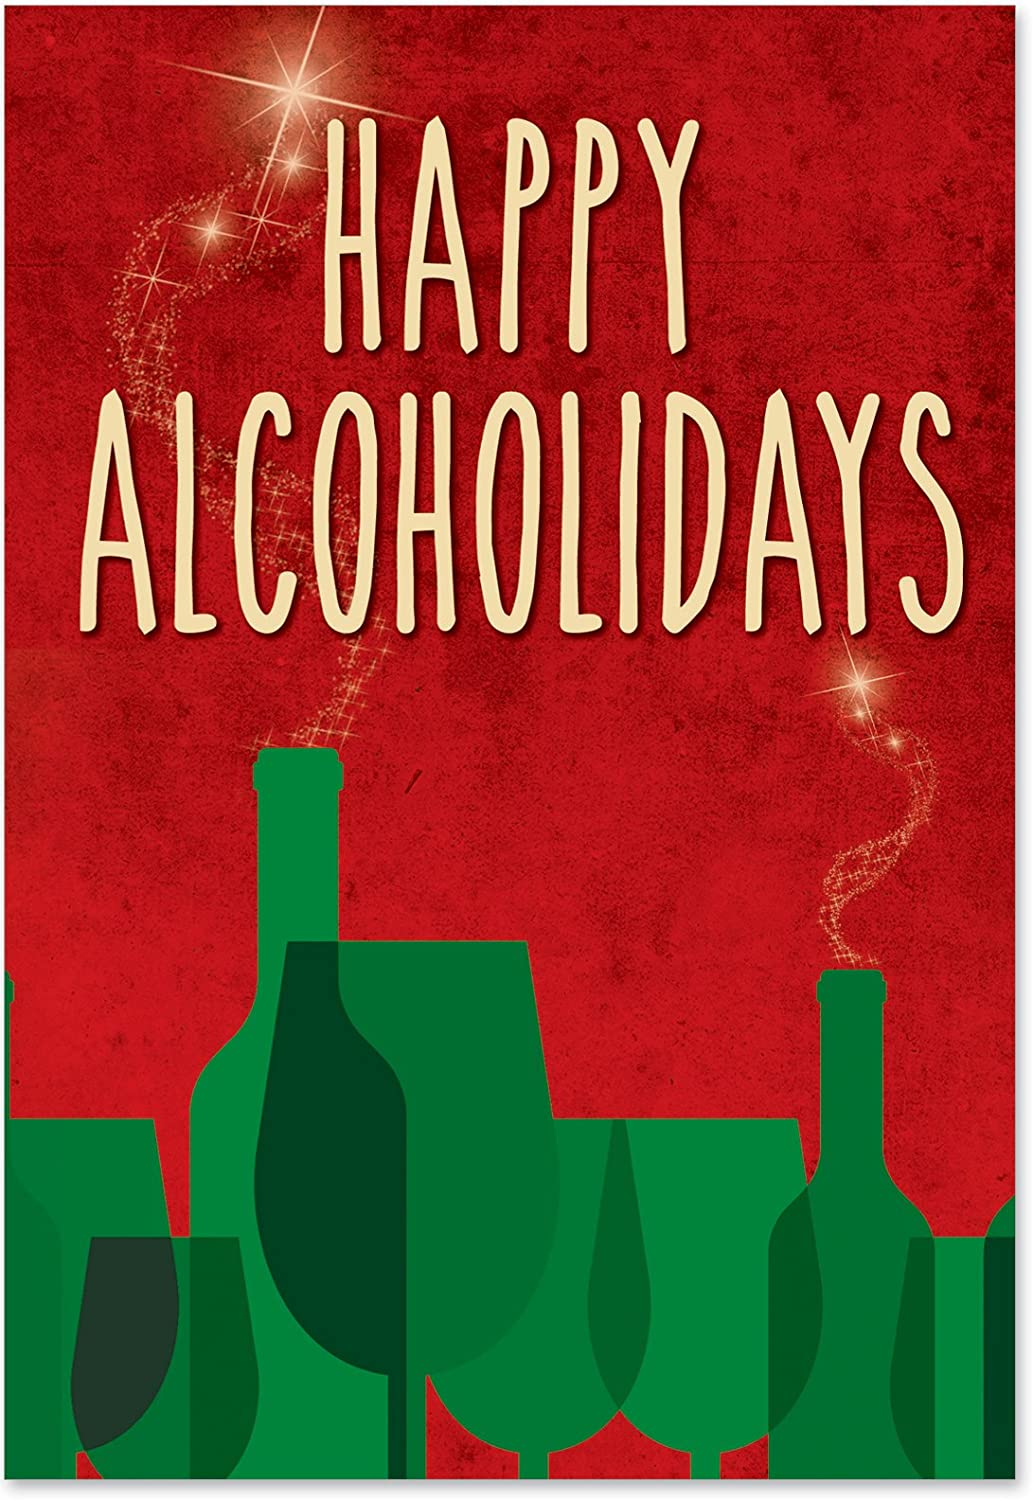 Nobleworks    Happy alcoholidays  Funny Frohe Weihnachten Grußkarte, 12,7 x 17,8 cm (1171) B00WH49H9M | Beliebte Empfehlung